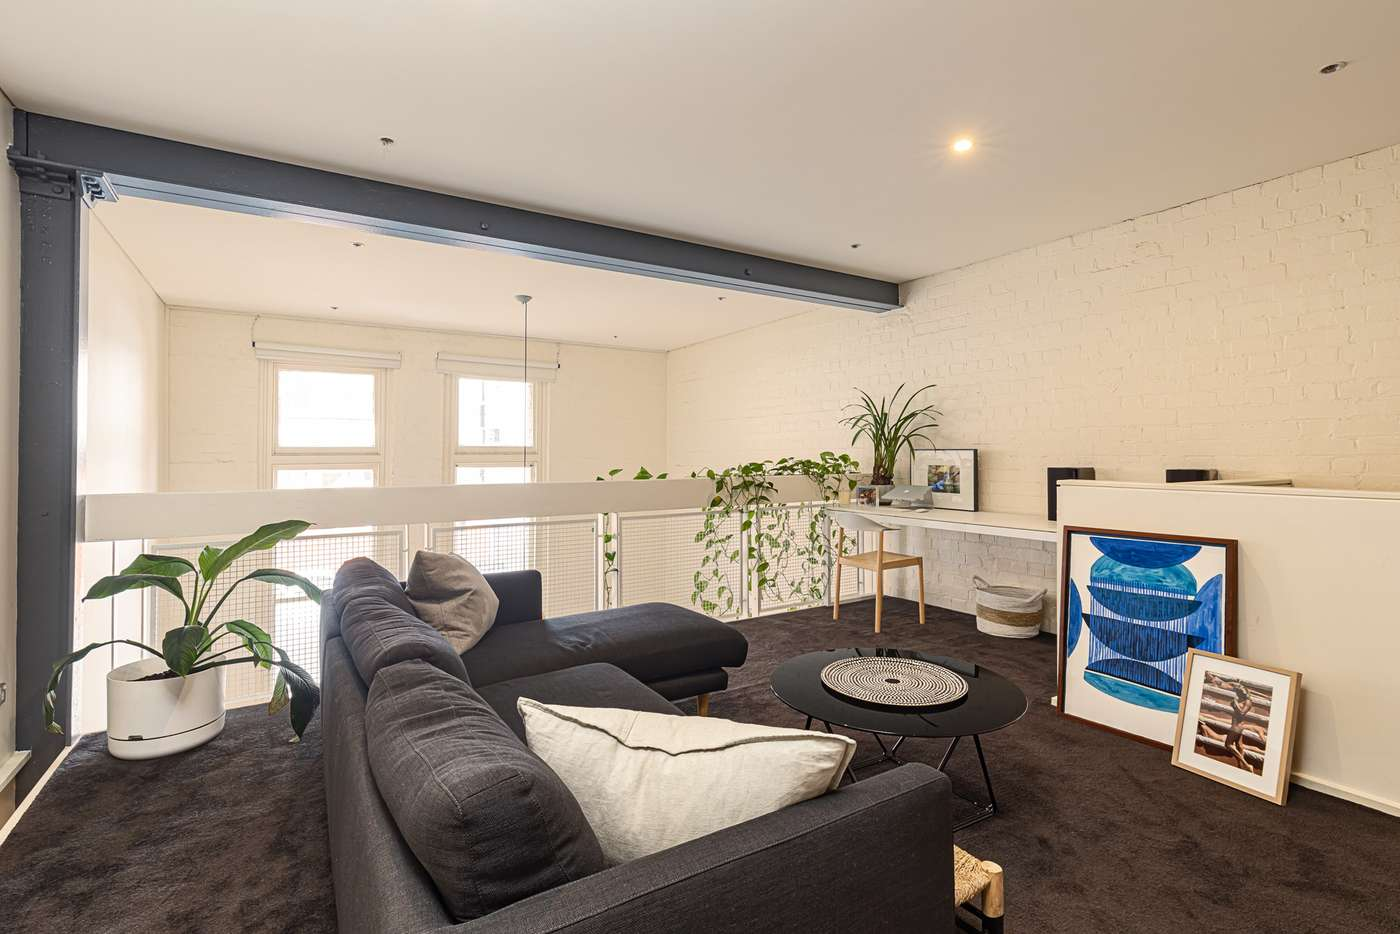 Sixth view of Homely apartment listing, 1/79 Oxford Street, Collingwood VIC 3066